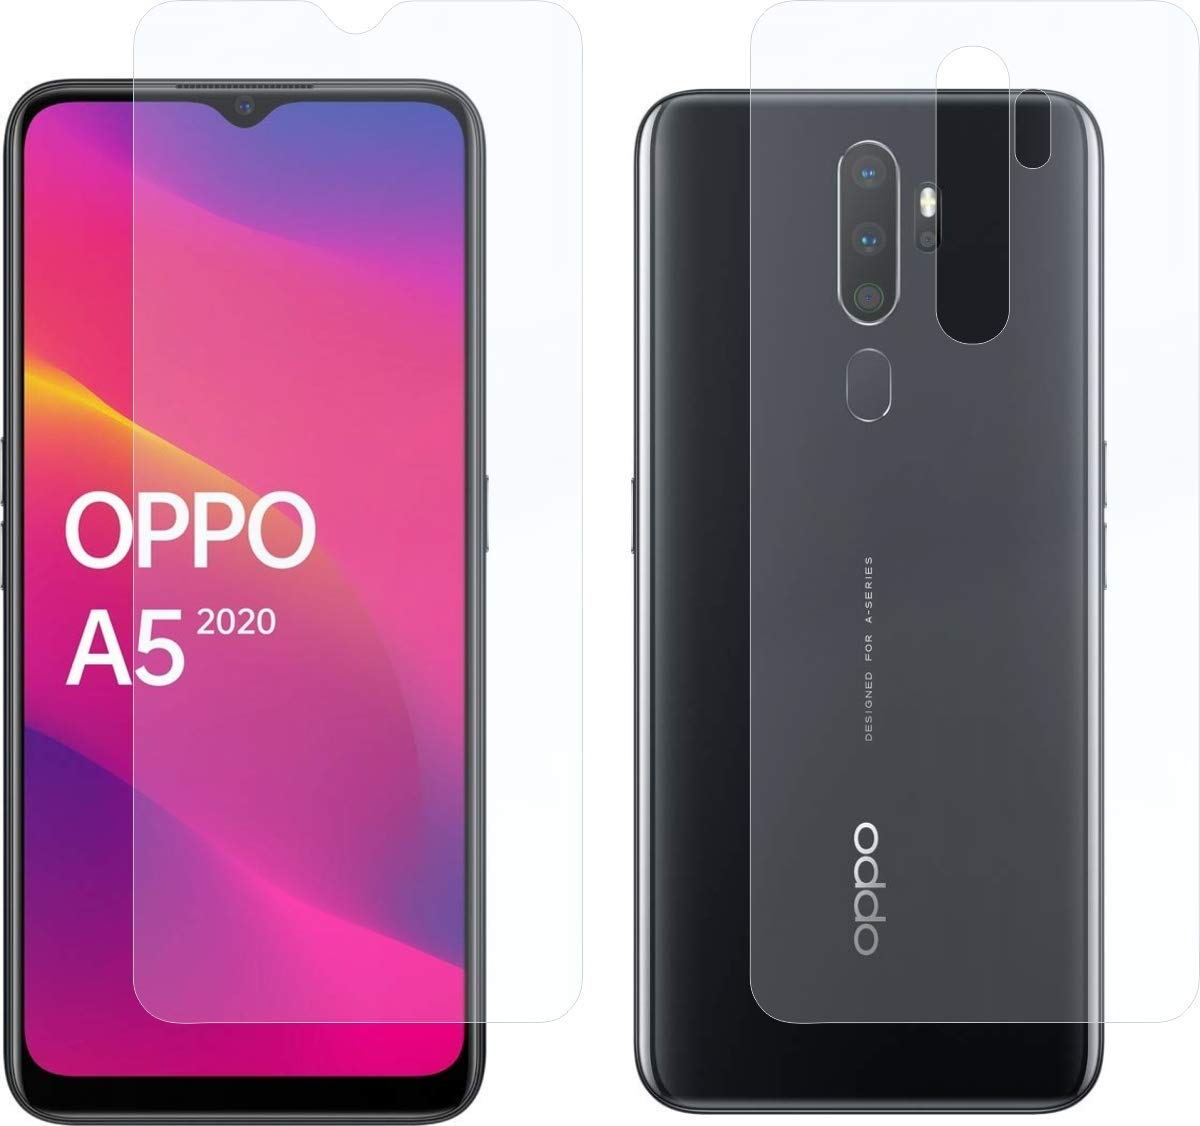 Oppo Mobile Phones - Gadgets of the New Era